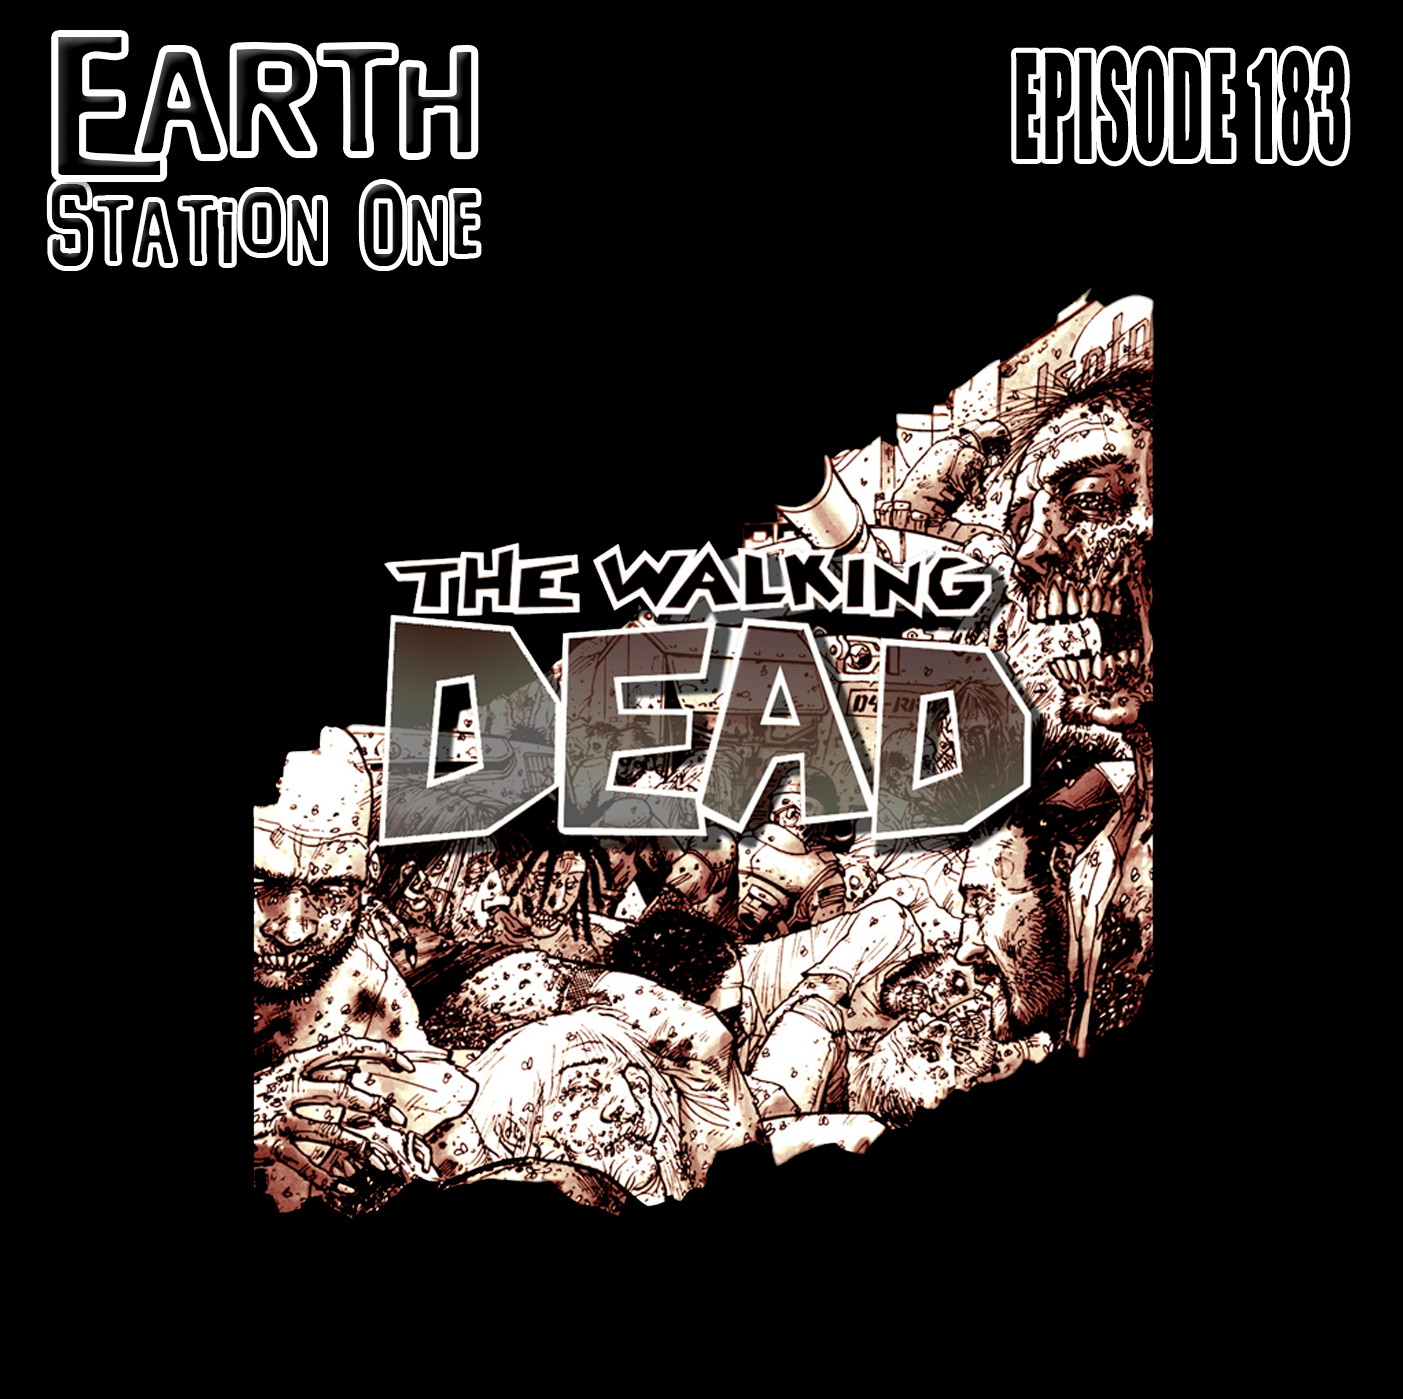 Earth Station One Episode 183